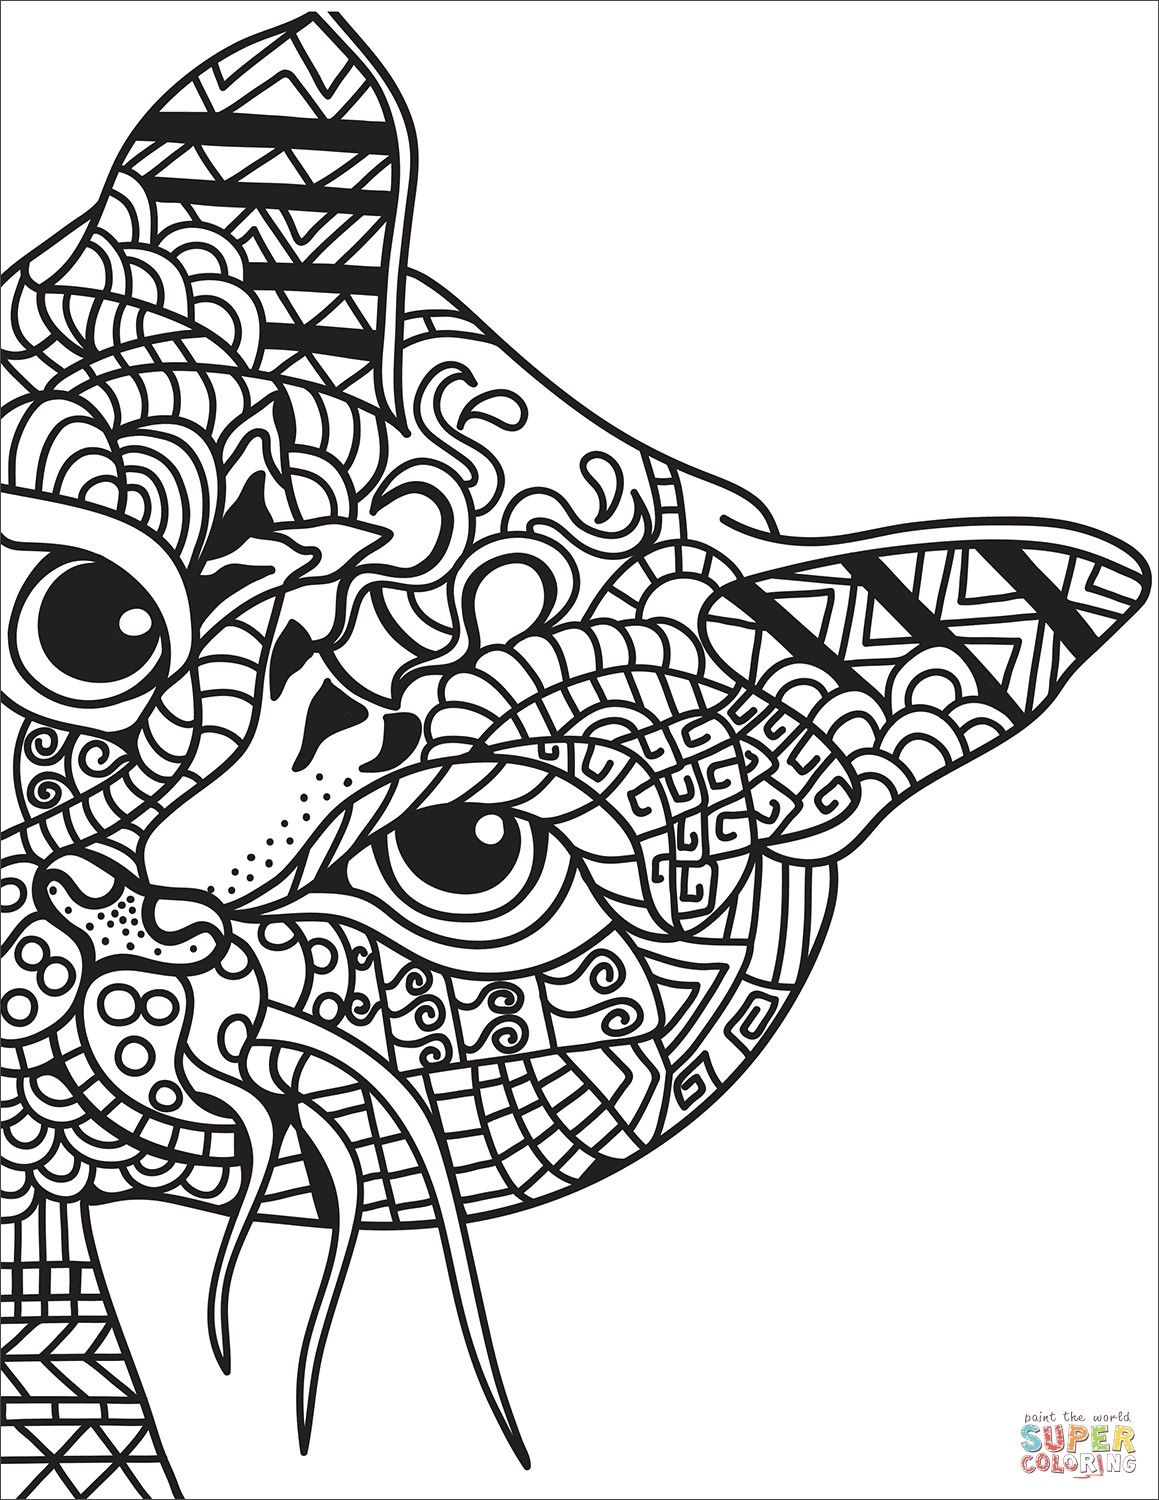 Pin By Mary Hollis Bacon On 0 Animals Cats Cat Coloring Page Dog Coloring Page Coloring Pages